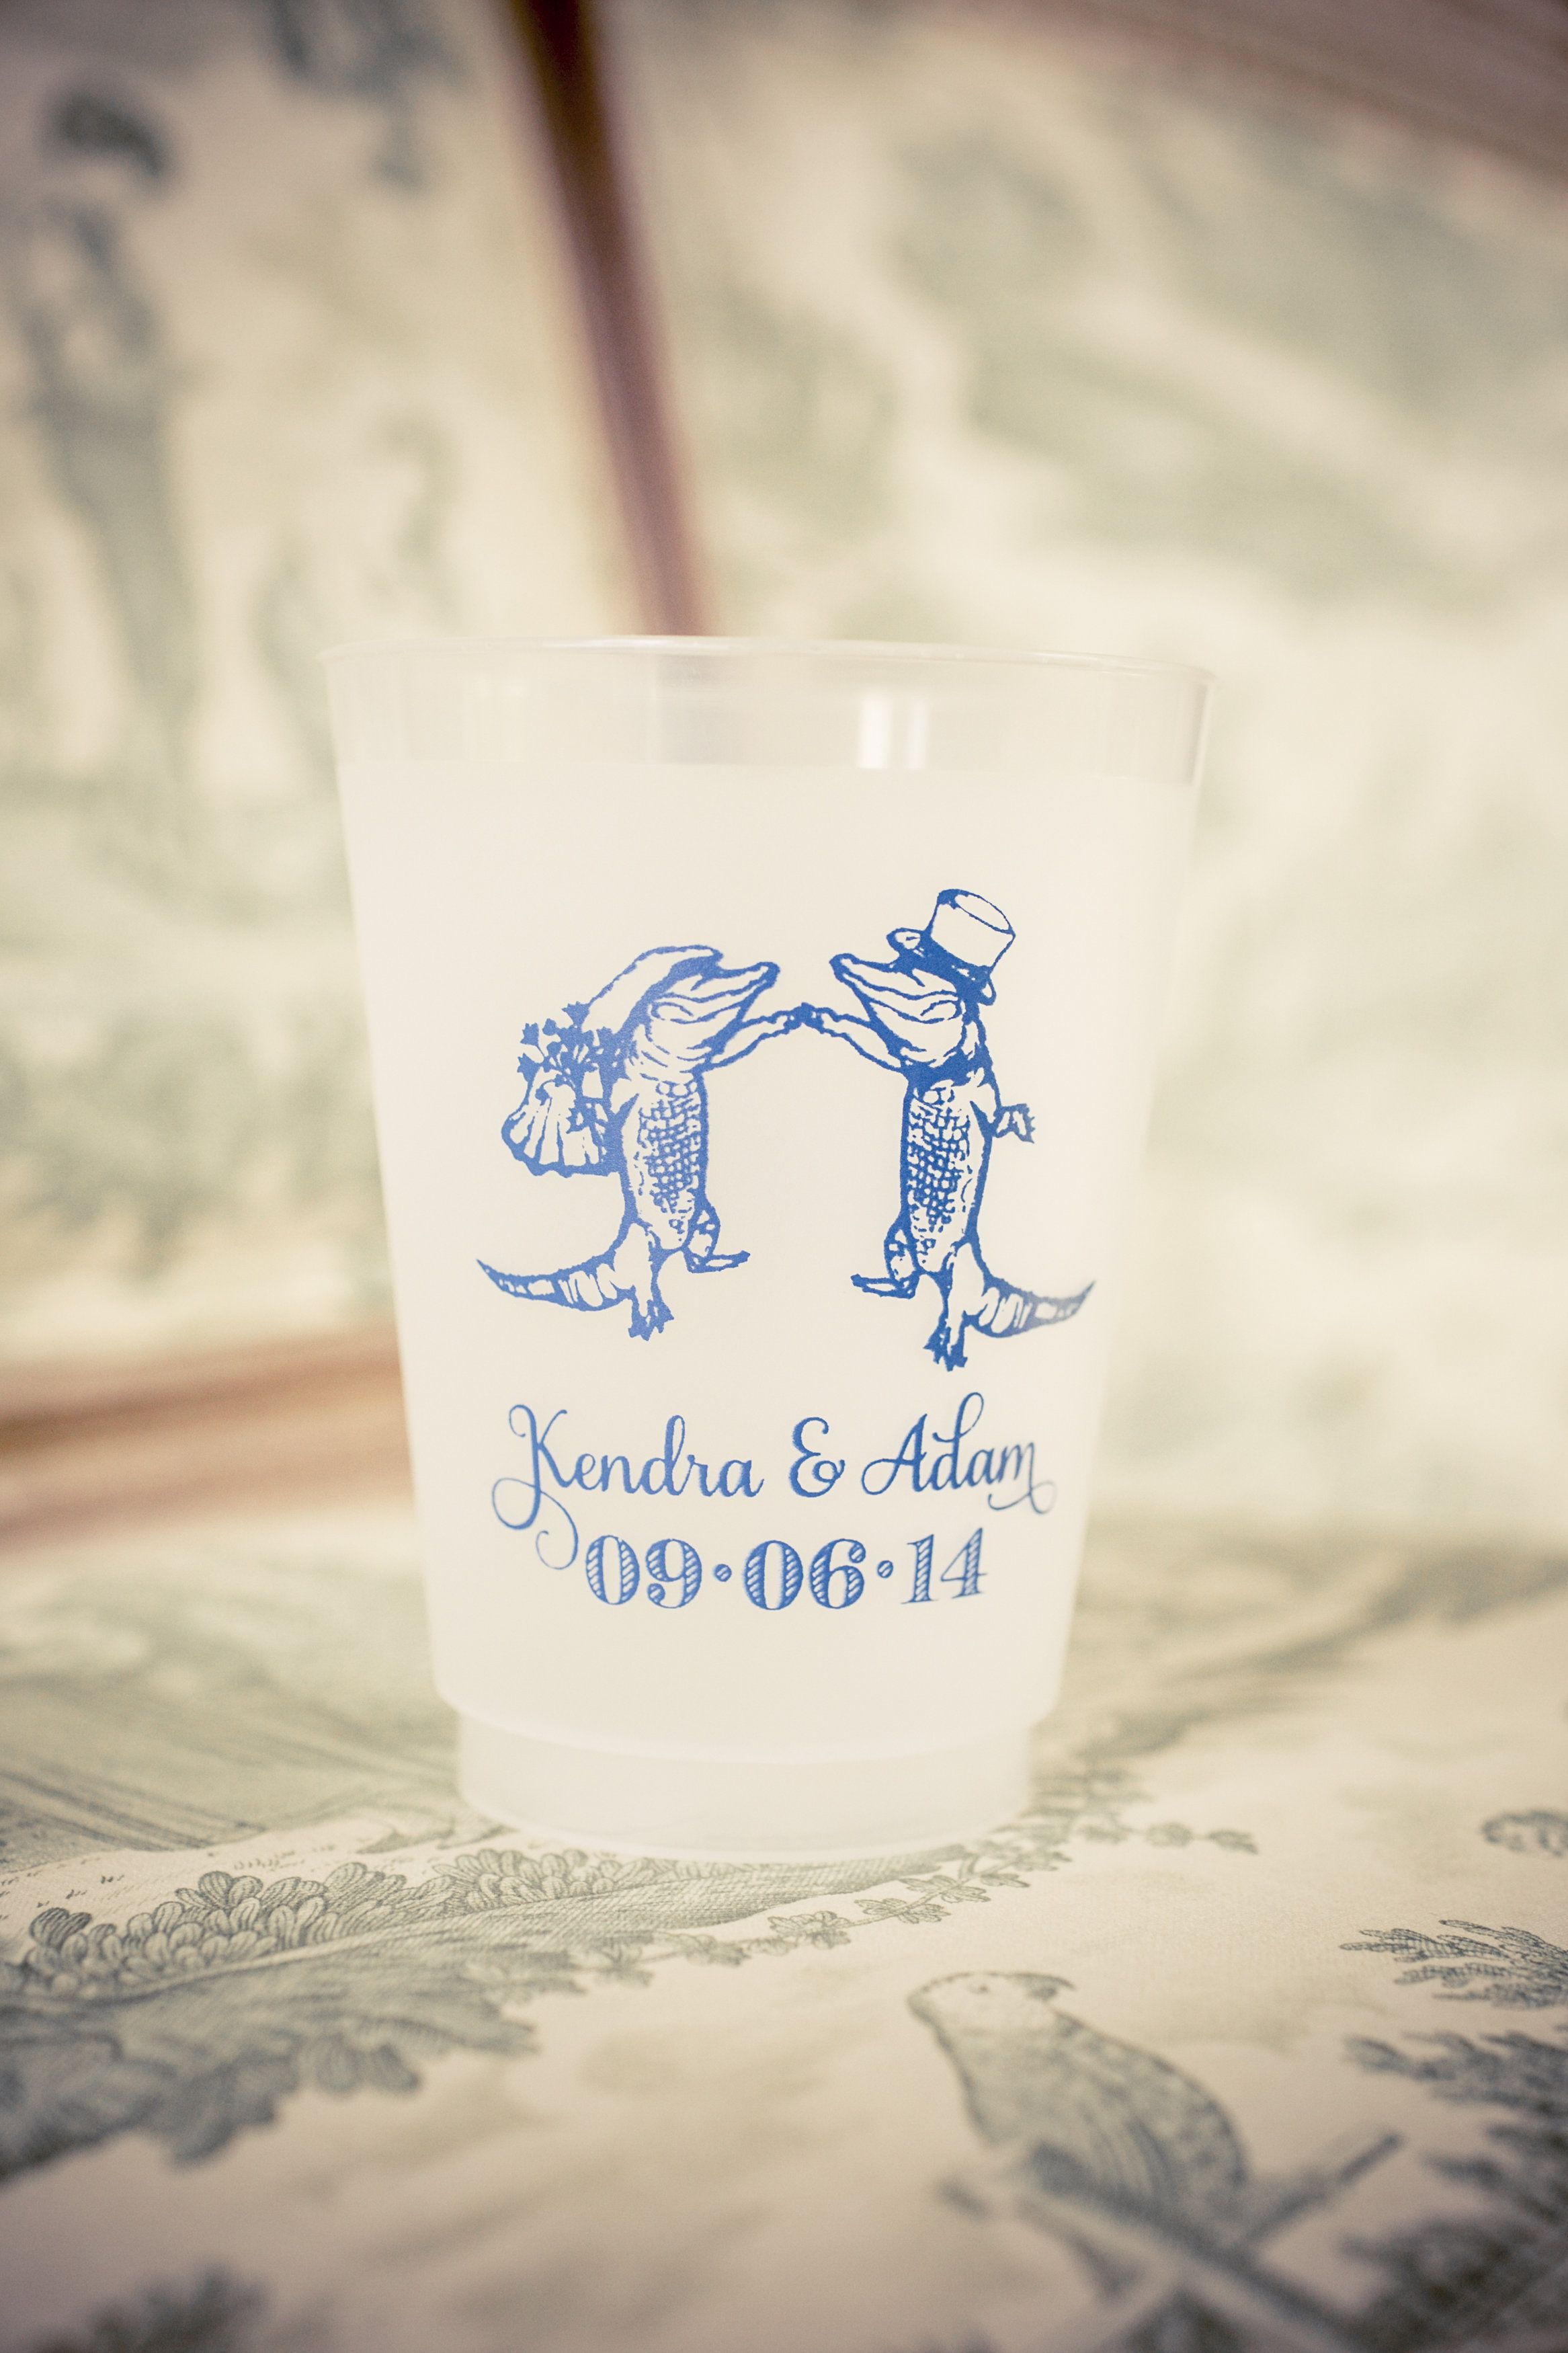 Scriptura Dancing Gators New Orleans-Inspired Wedding Favor Cup ...